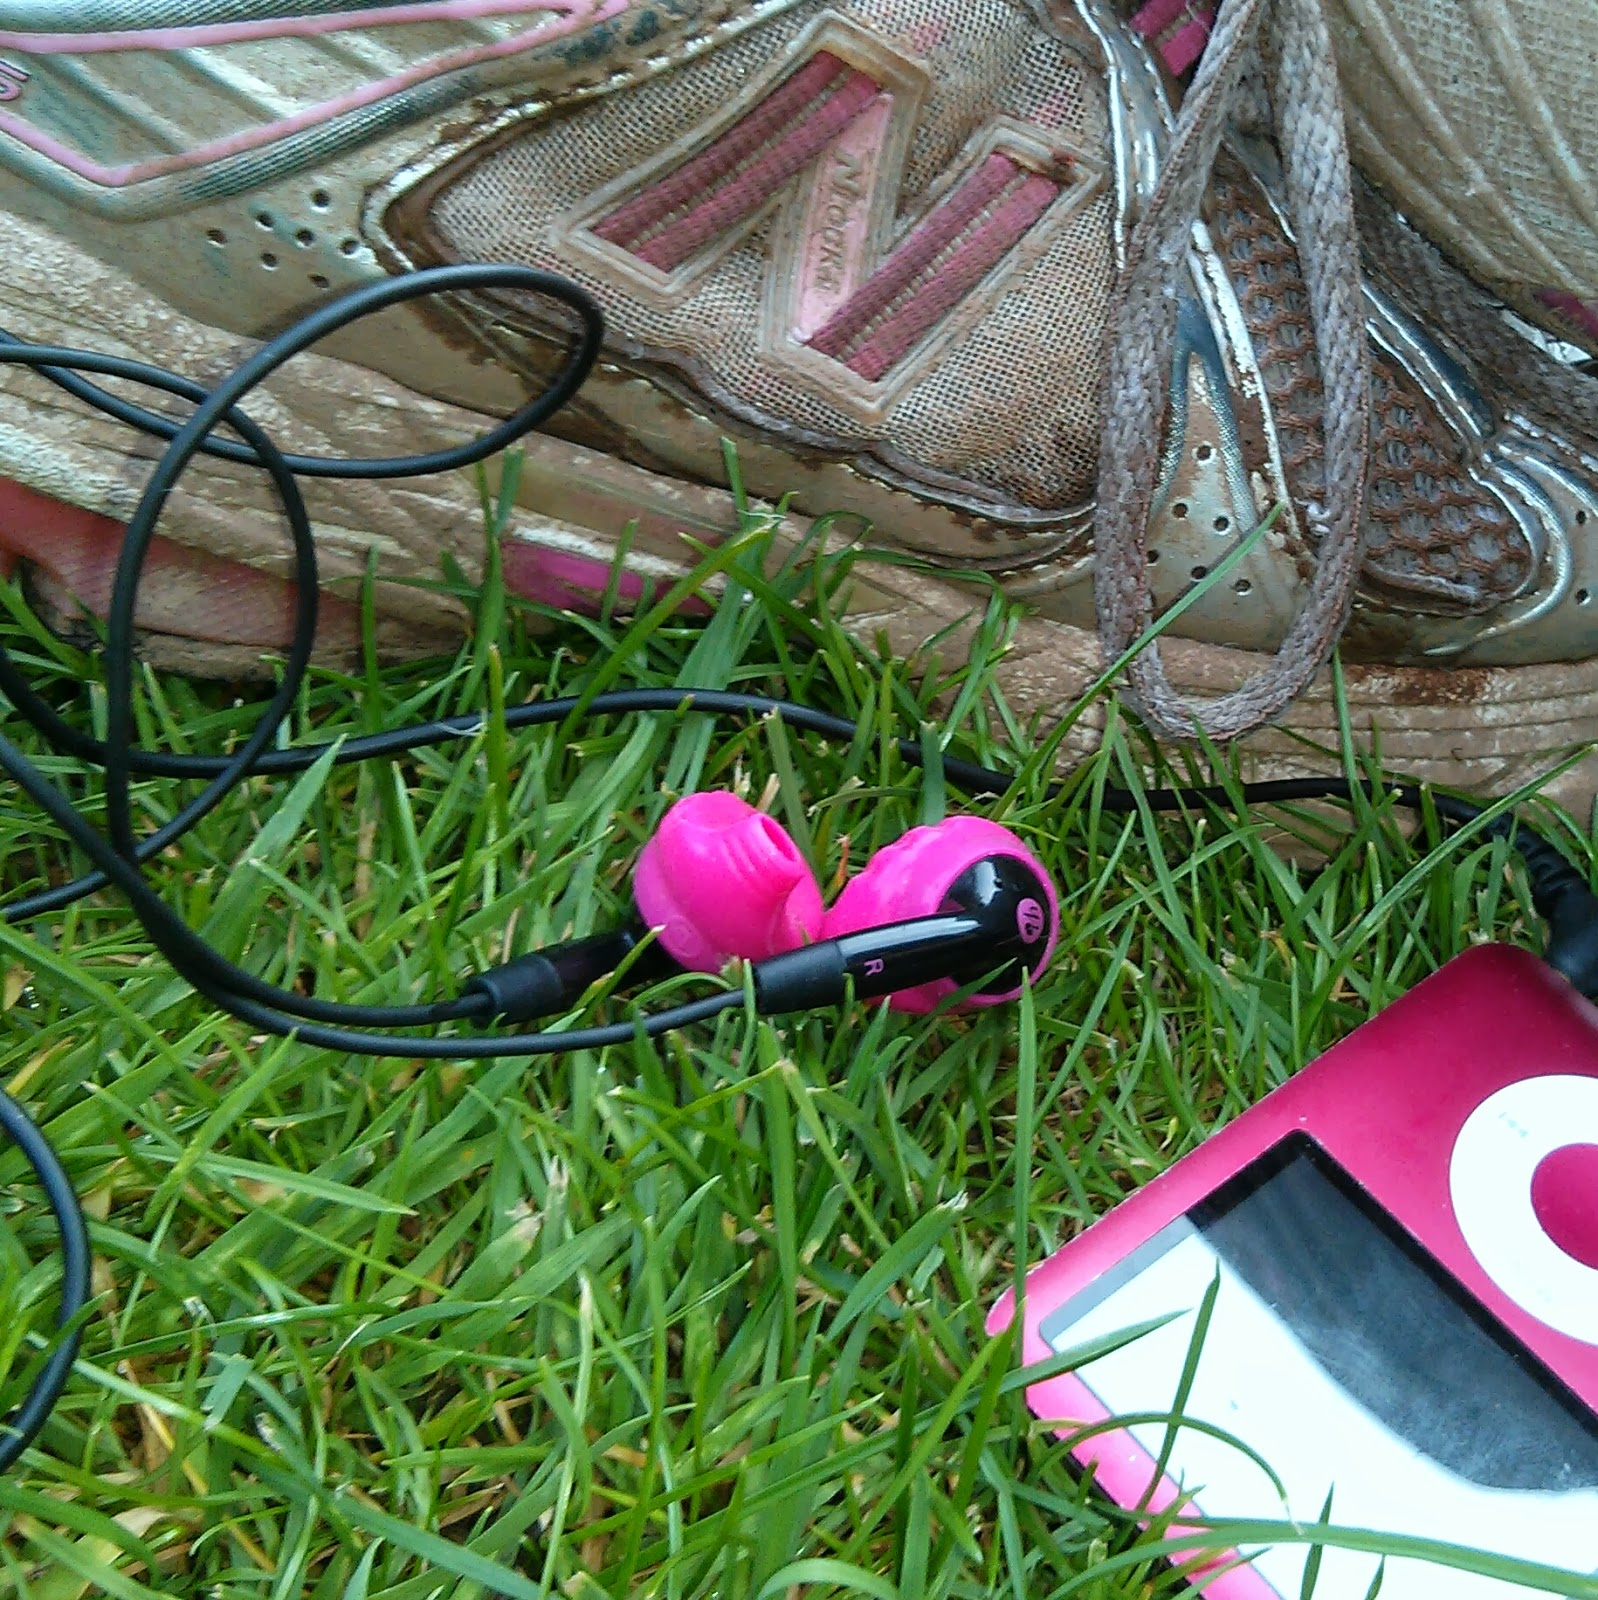 Plugged into my iPod and ready to go, Yurbuds